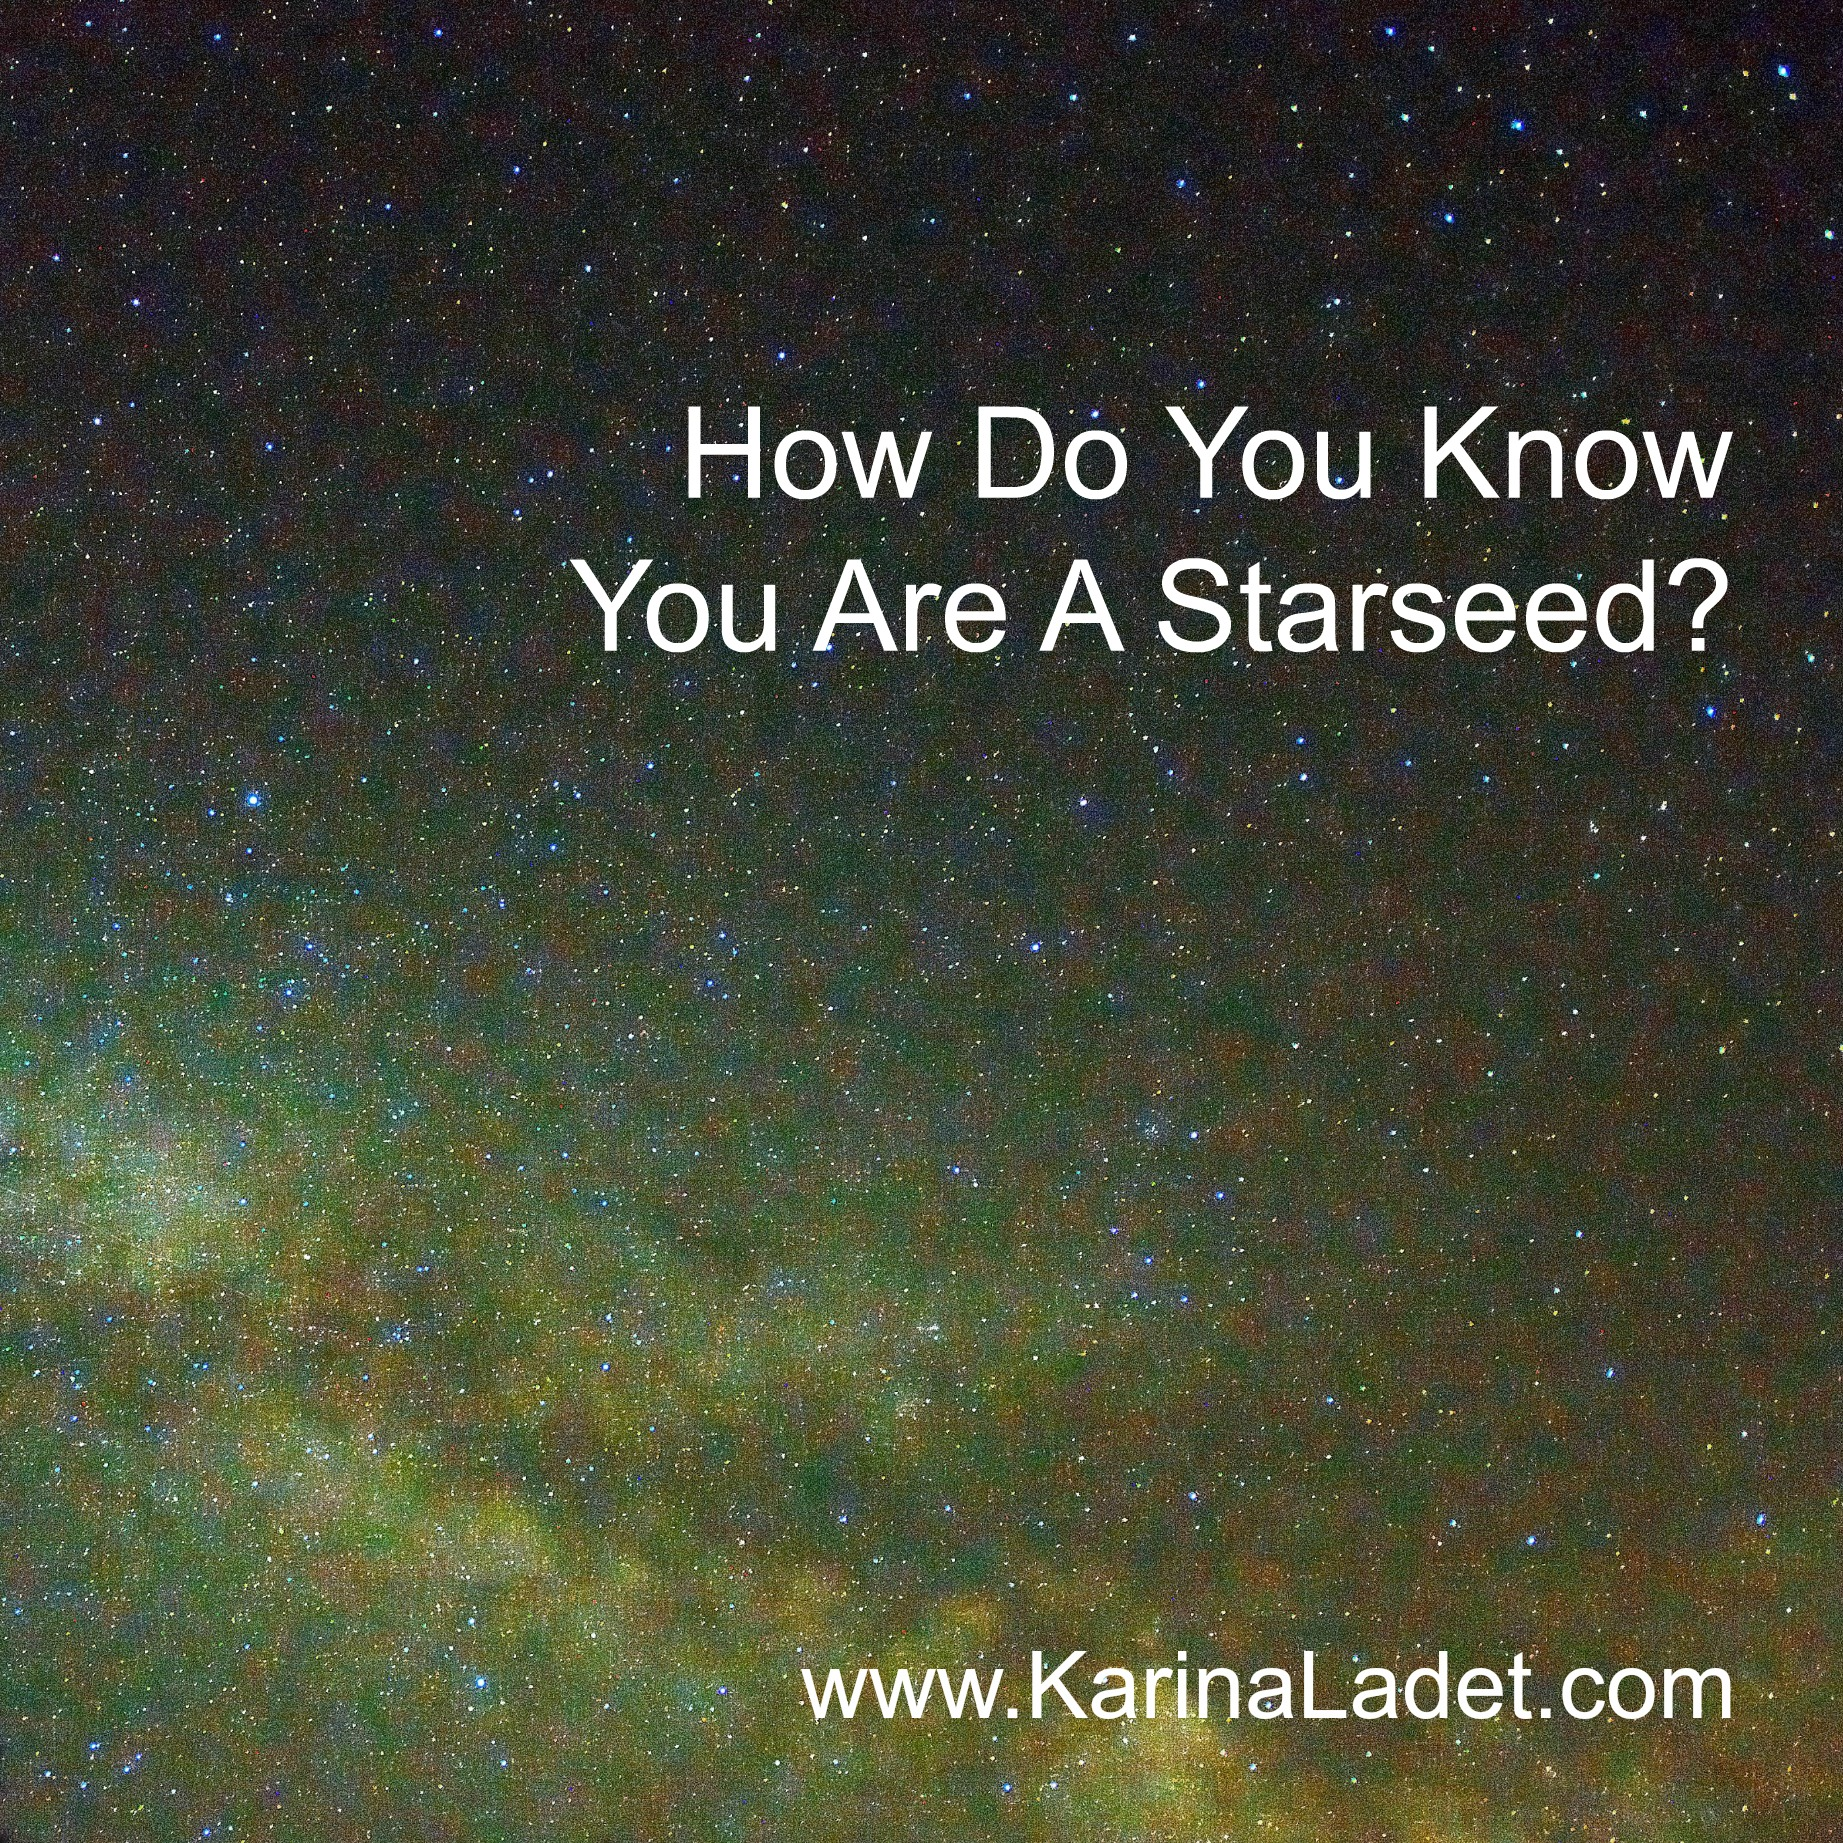 KnowStarSeed